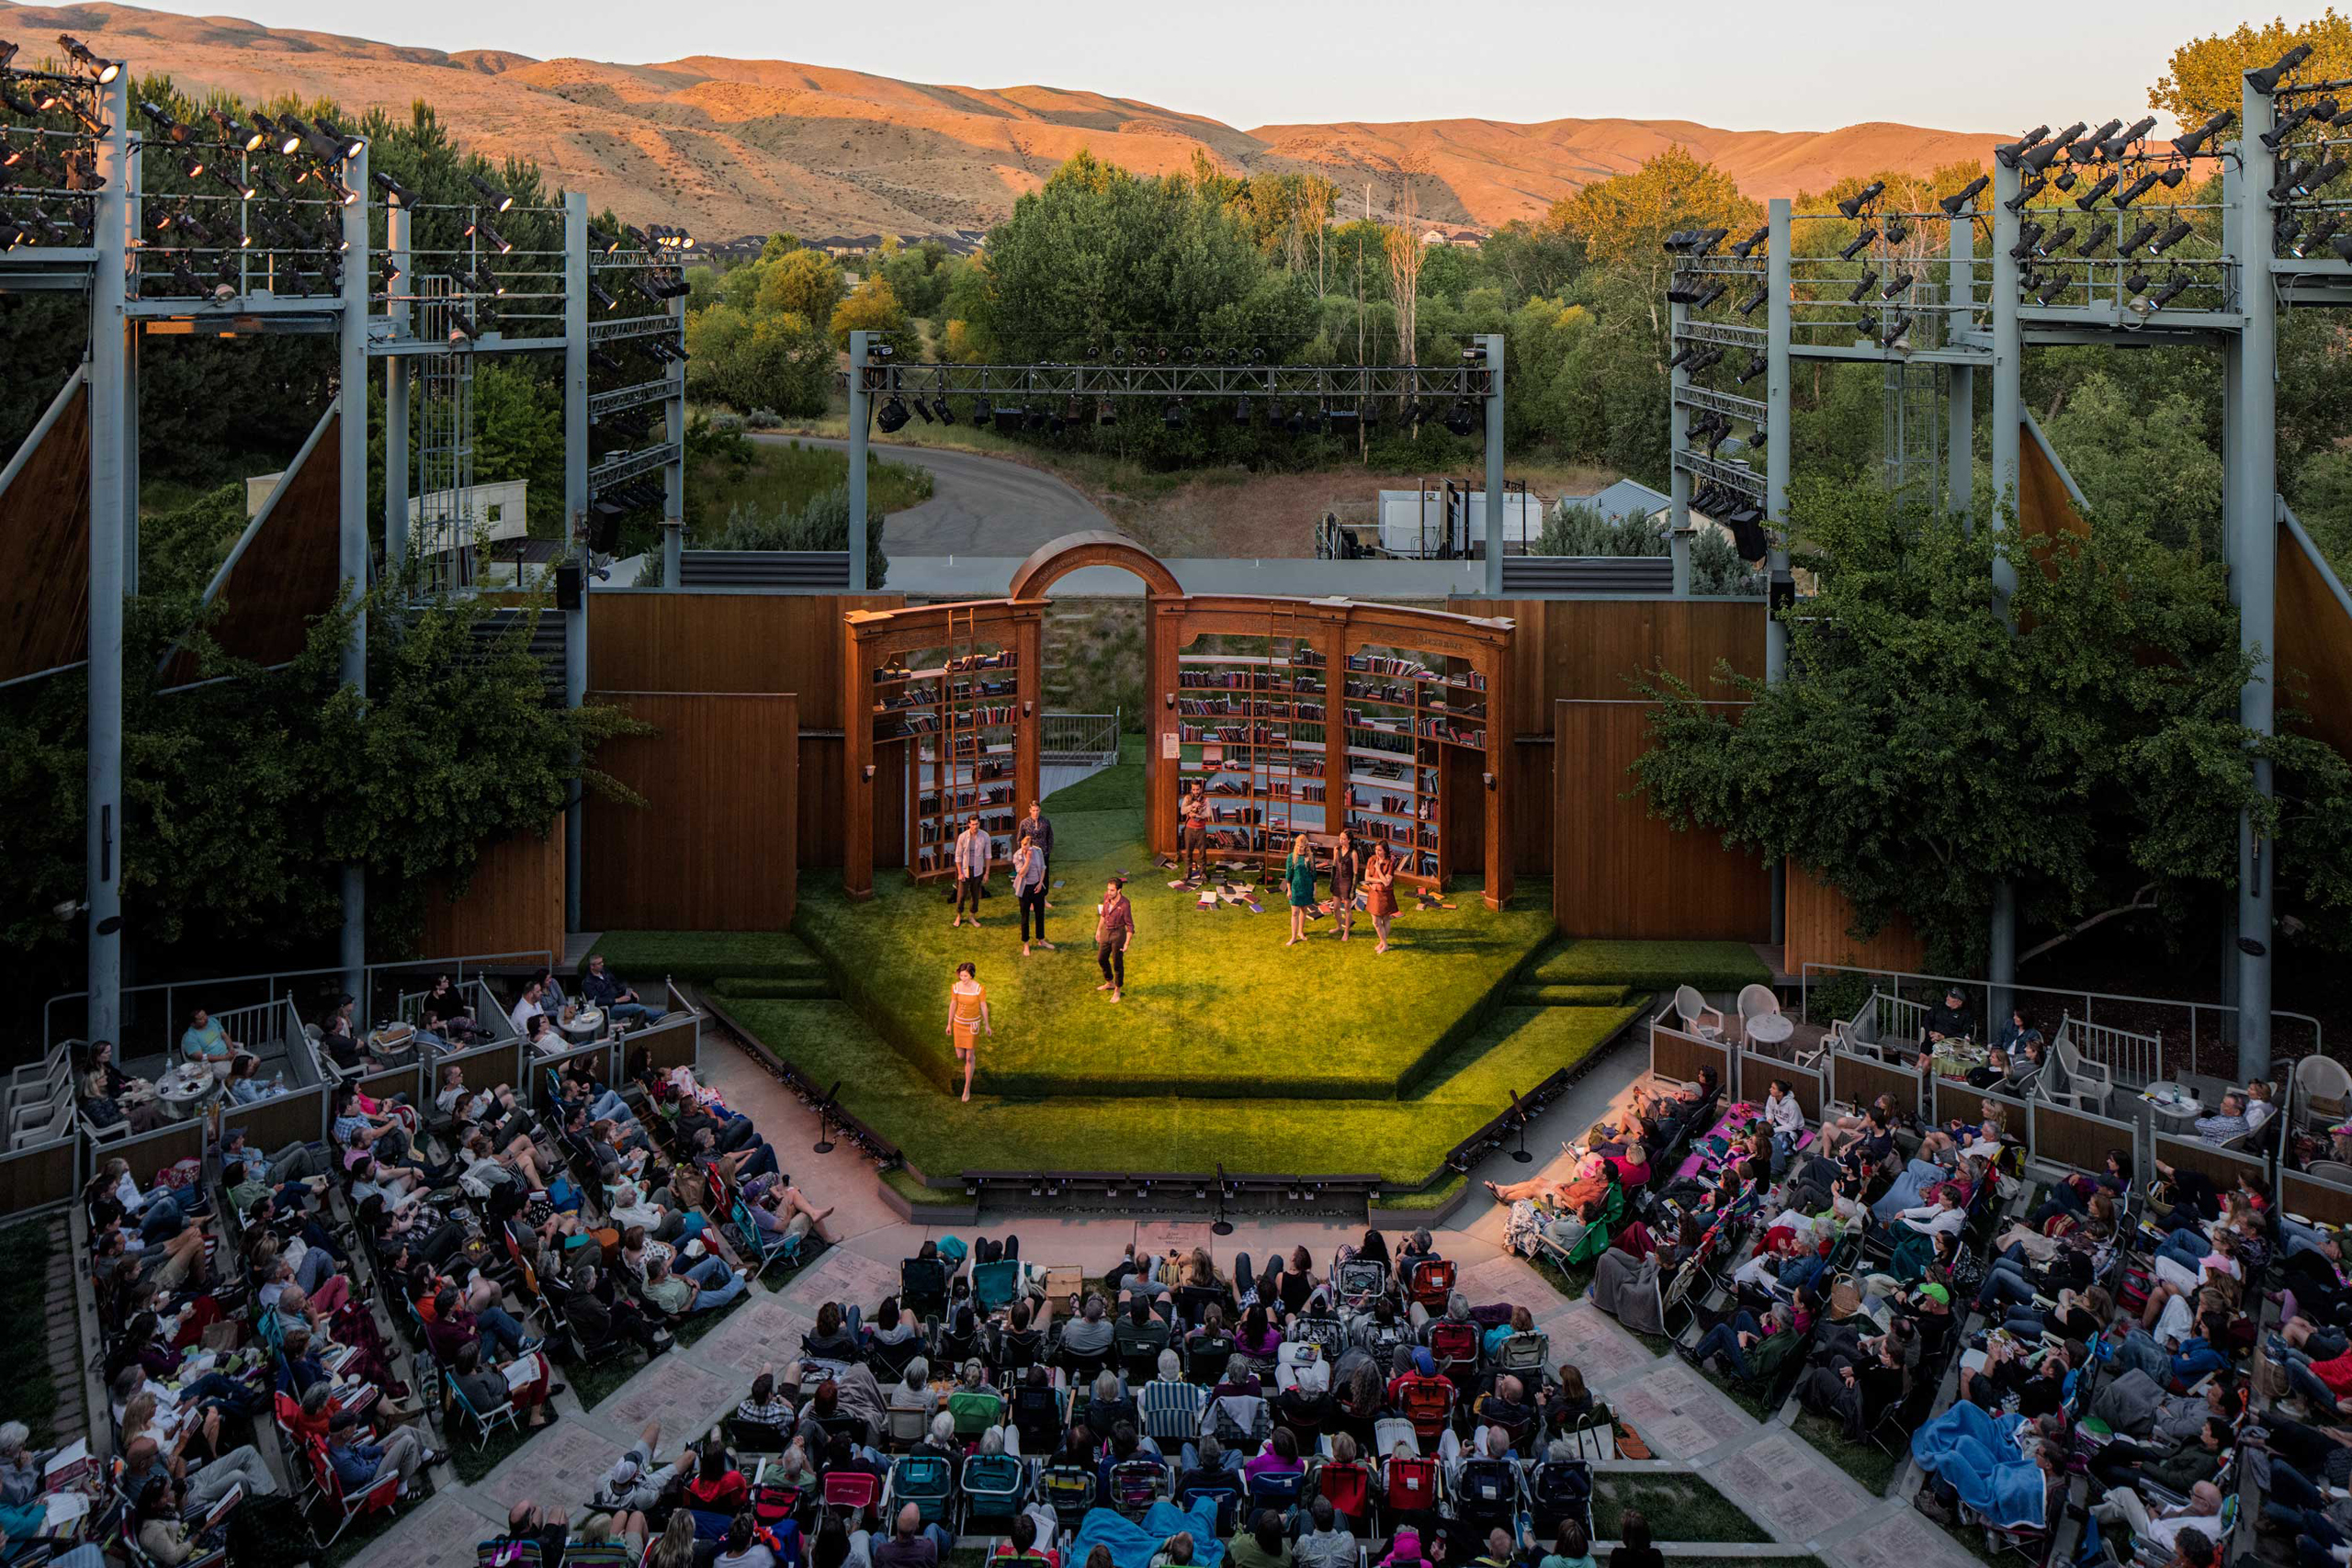 """William Shakespeare's play """"Love's Labor's Lost"""" is performed at Idaho Shakespeare Festival in Boise, ID on Sunday, June 12, 2016."""